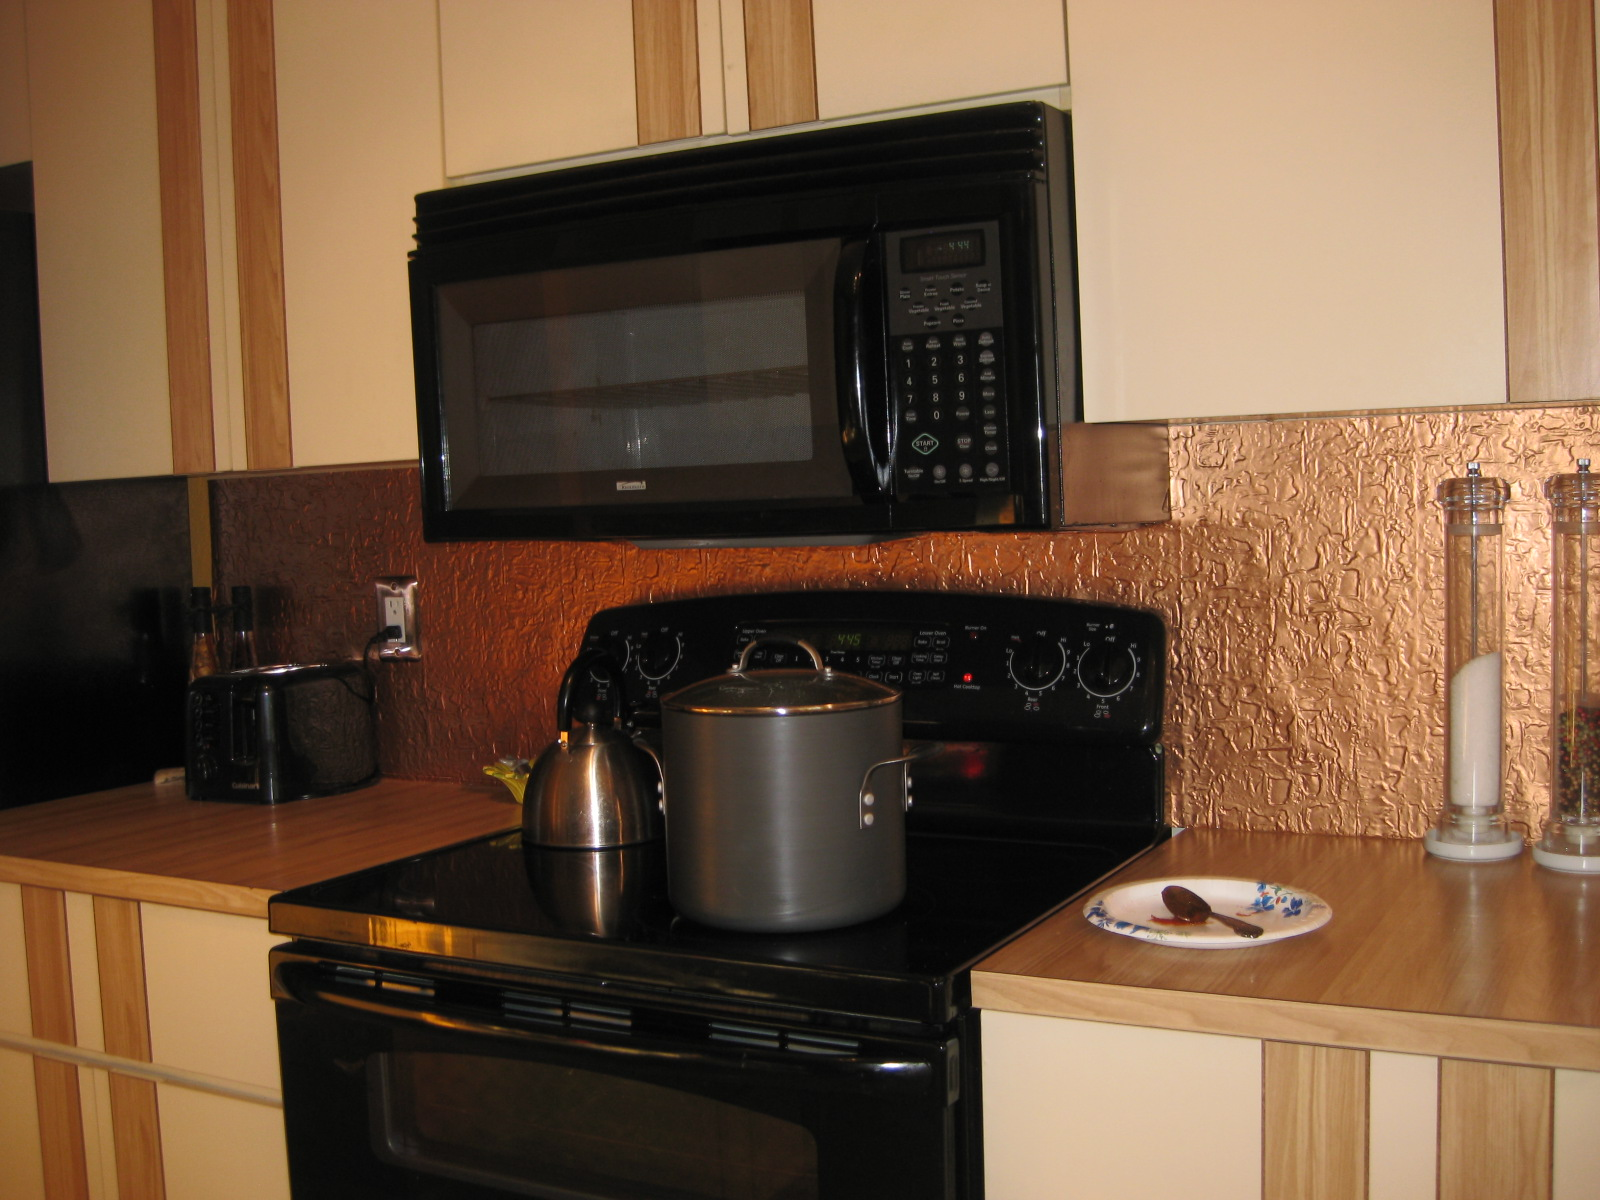 Wall panel using PVC Backsplash # 40 Copper